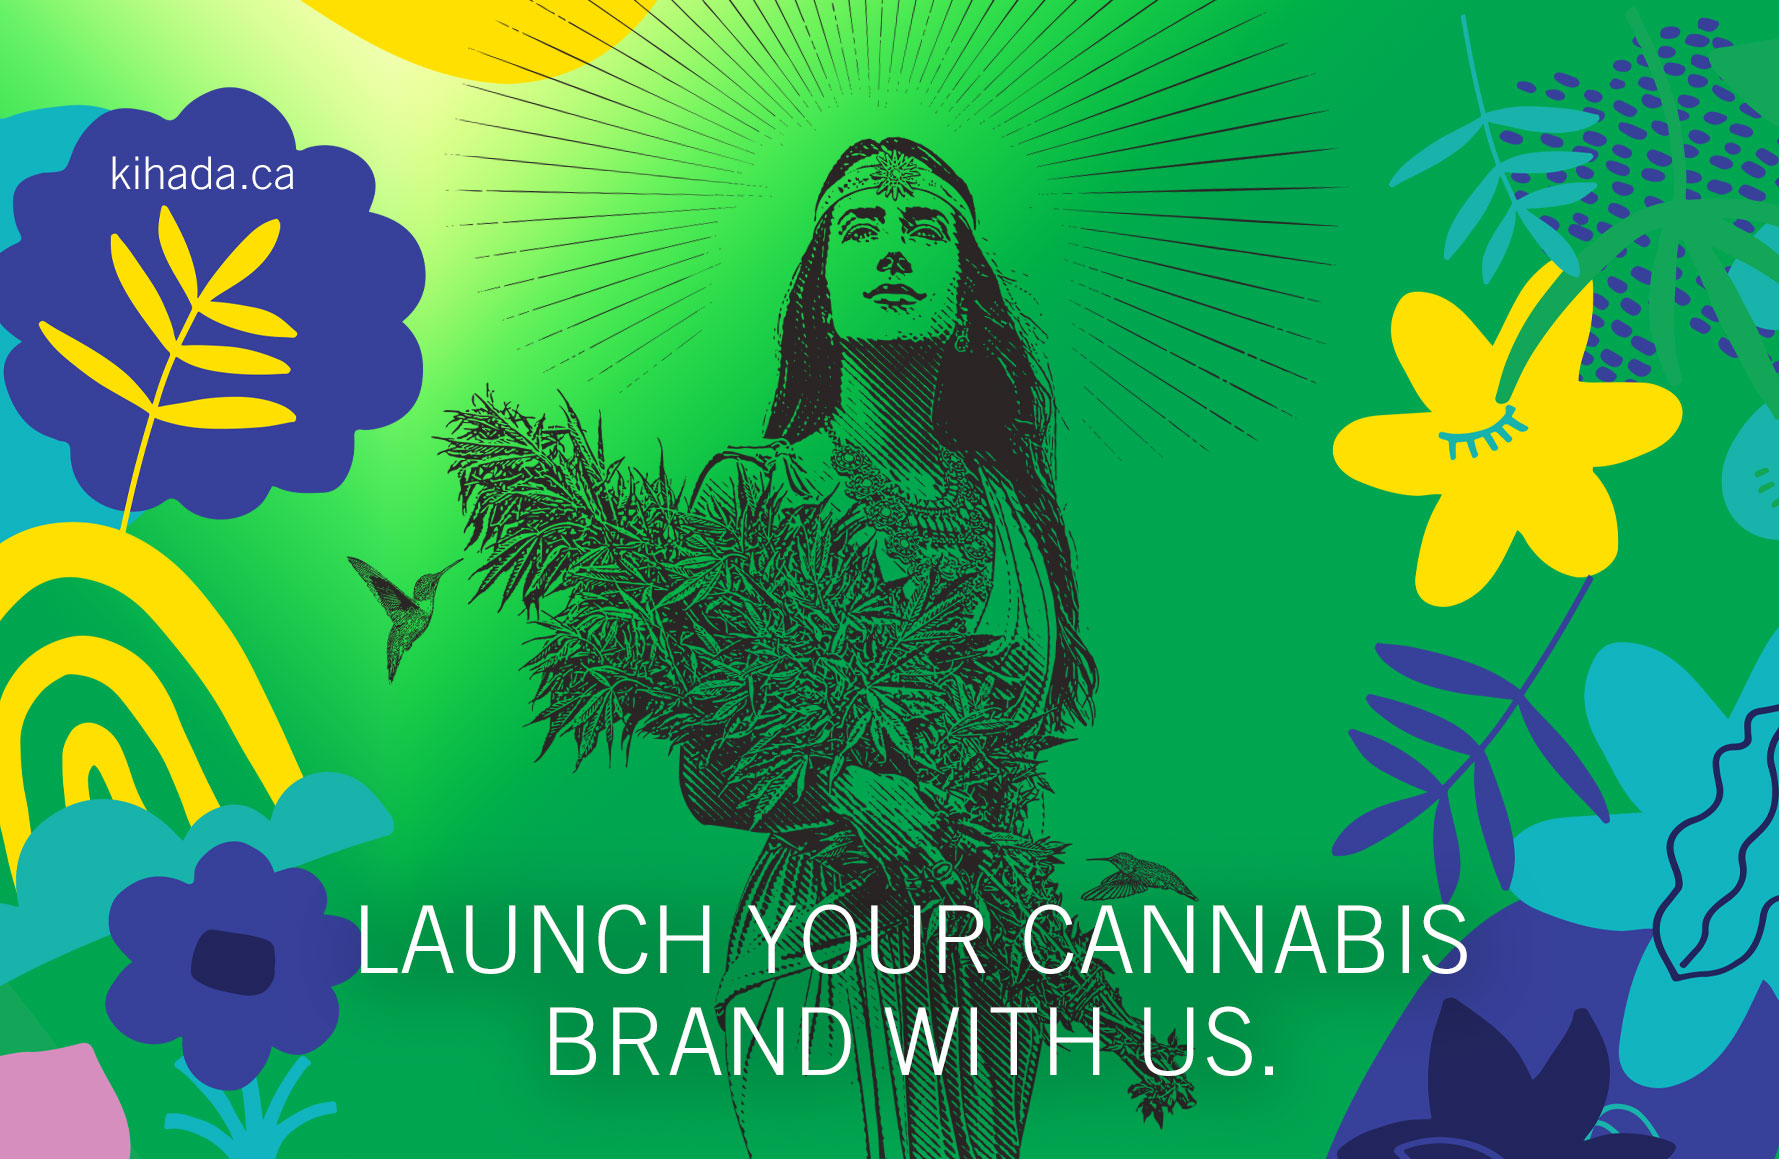 Launch Your Cannabis Brand With Us